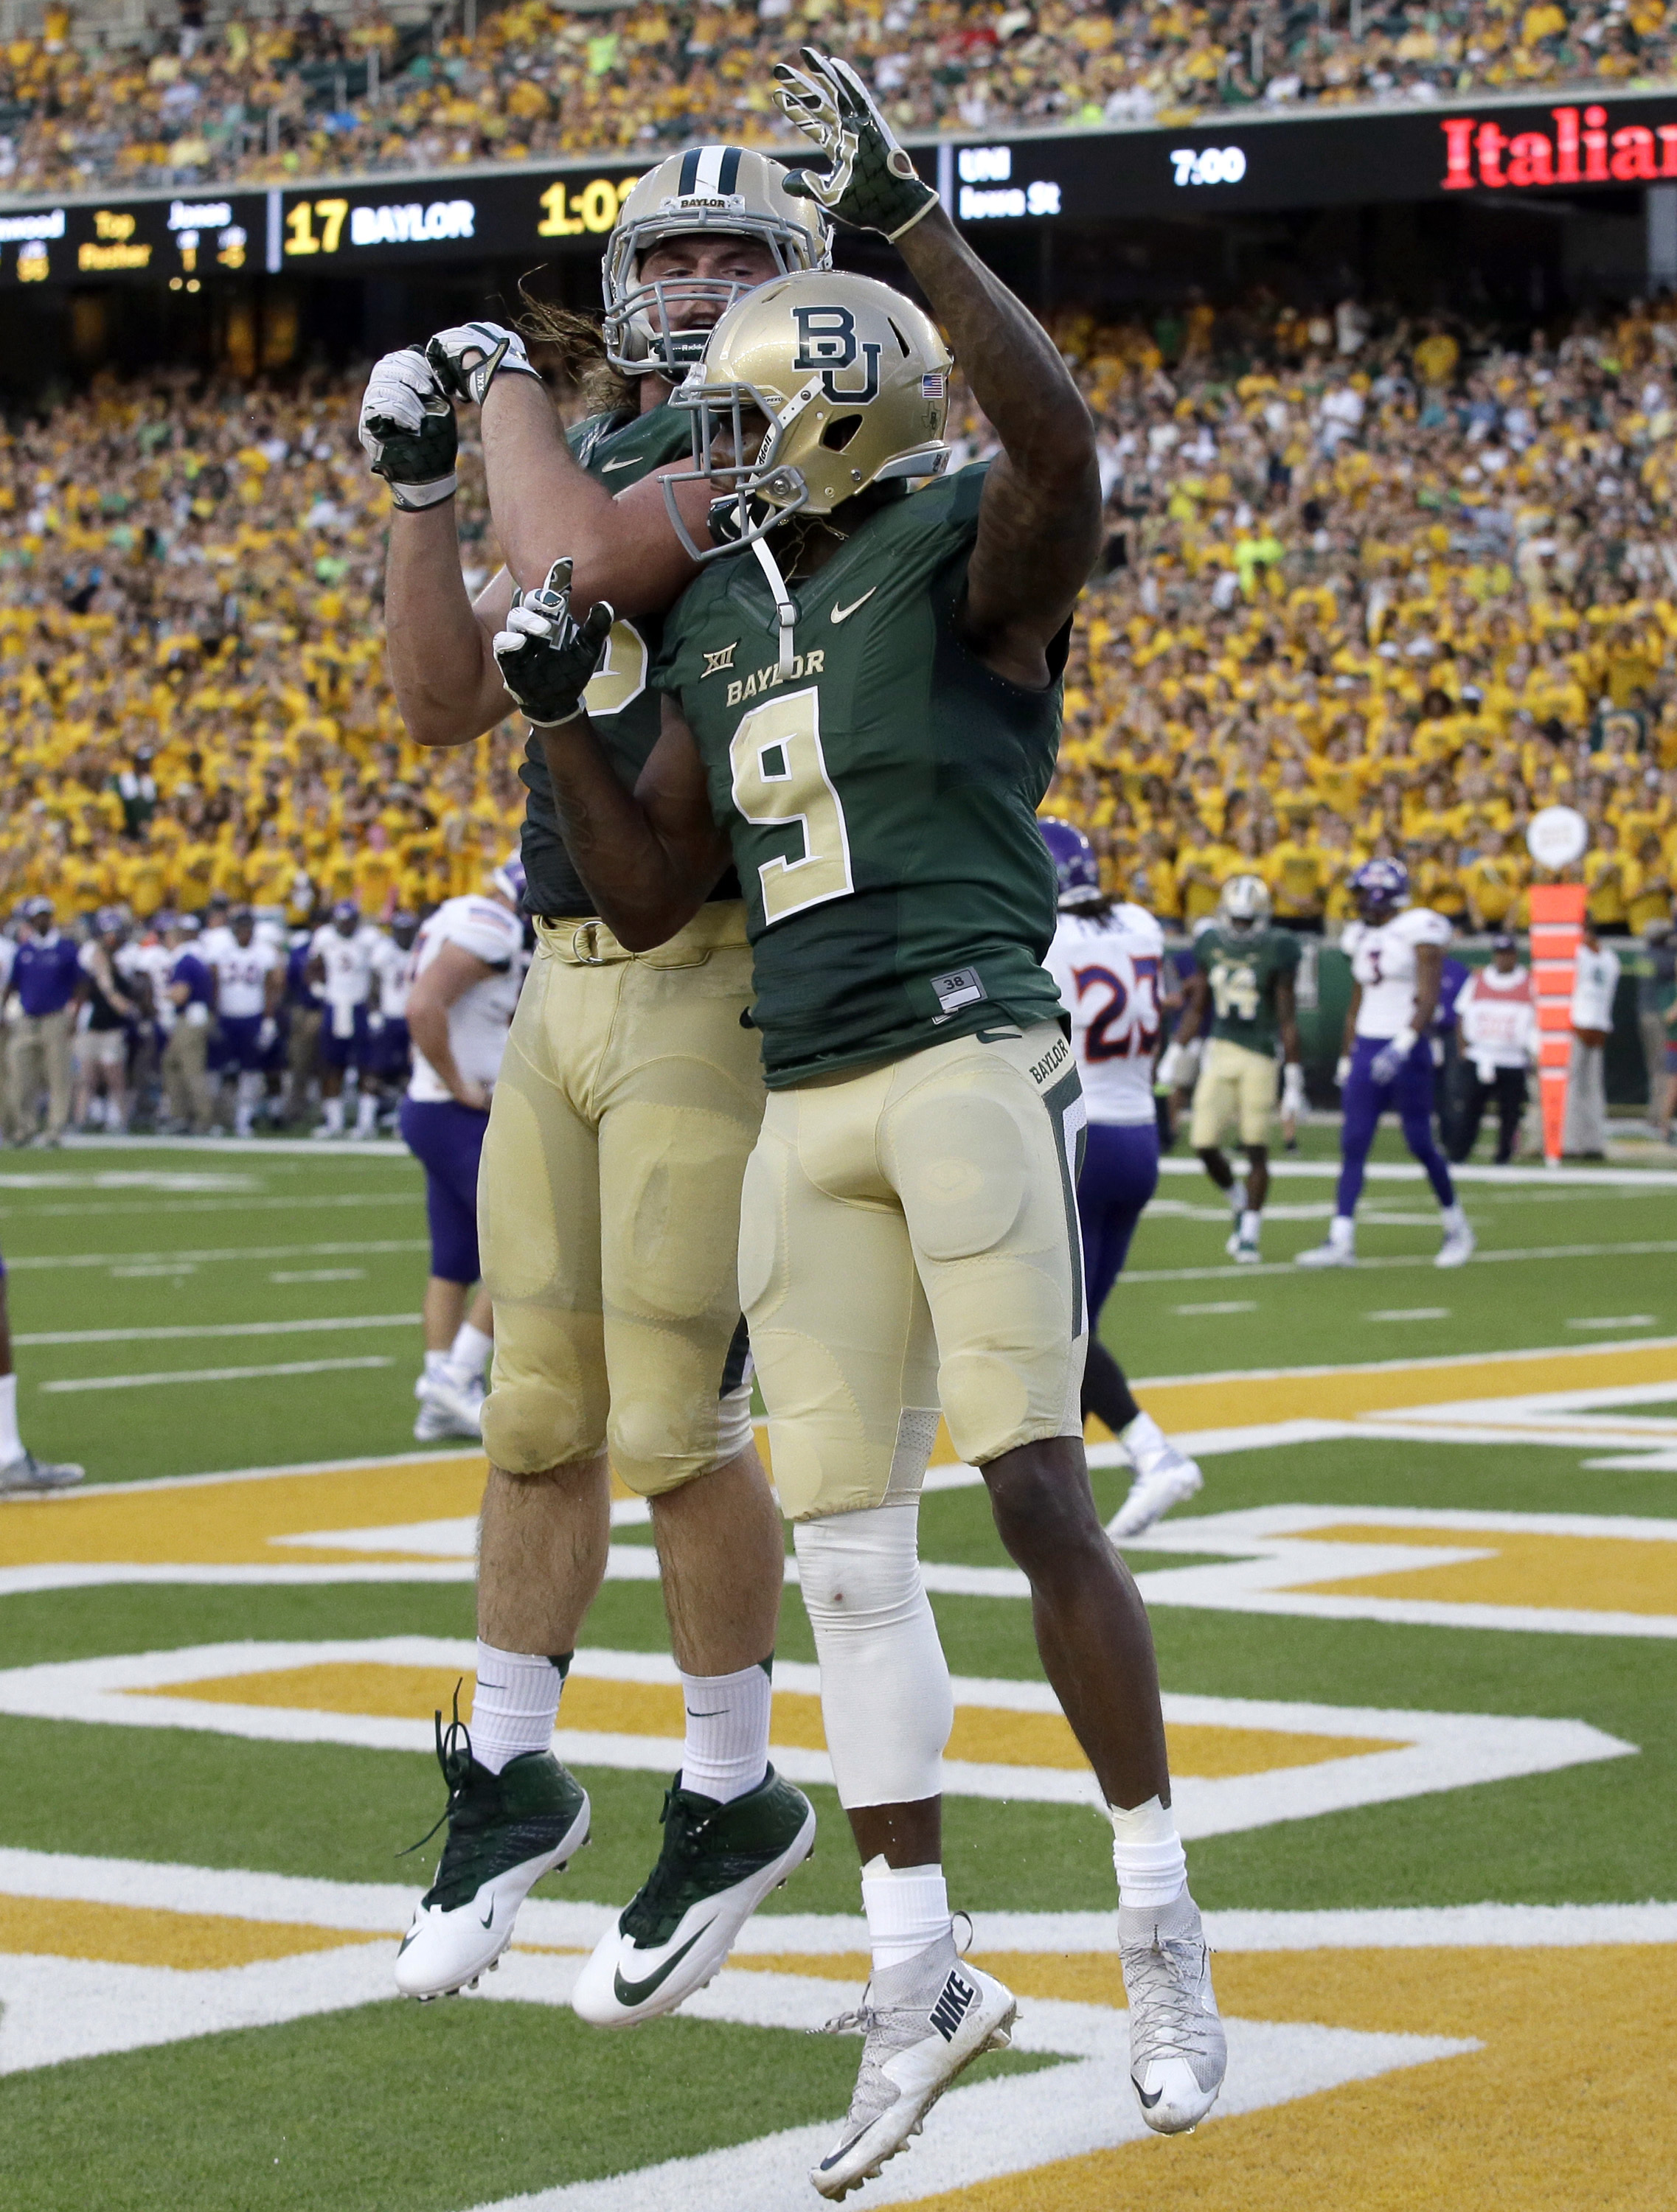 Baylor wide receiver KD Cannon (9) celebrates with teammate Sam Tecklenburg after catching a touchdown pass during the first half of an NCAA college football game Friday, Sept. 2, 2016, in Waco, Texas. (AP Photo/LM Otero)